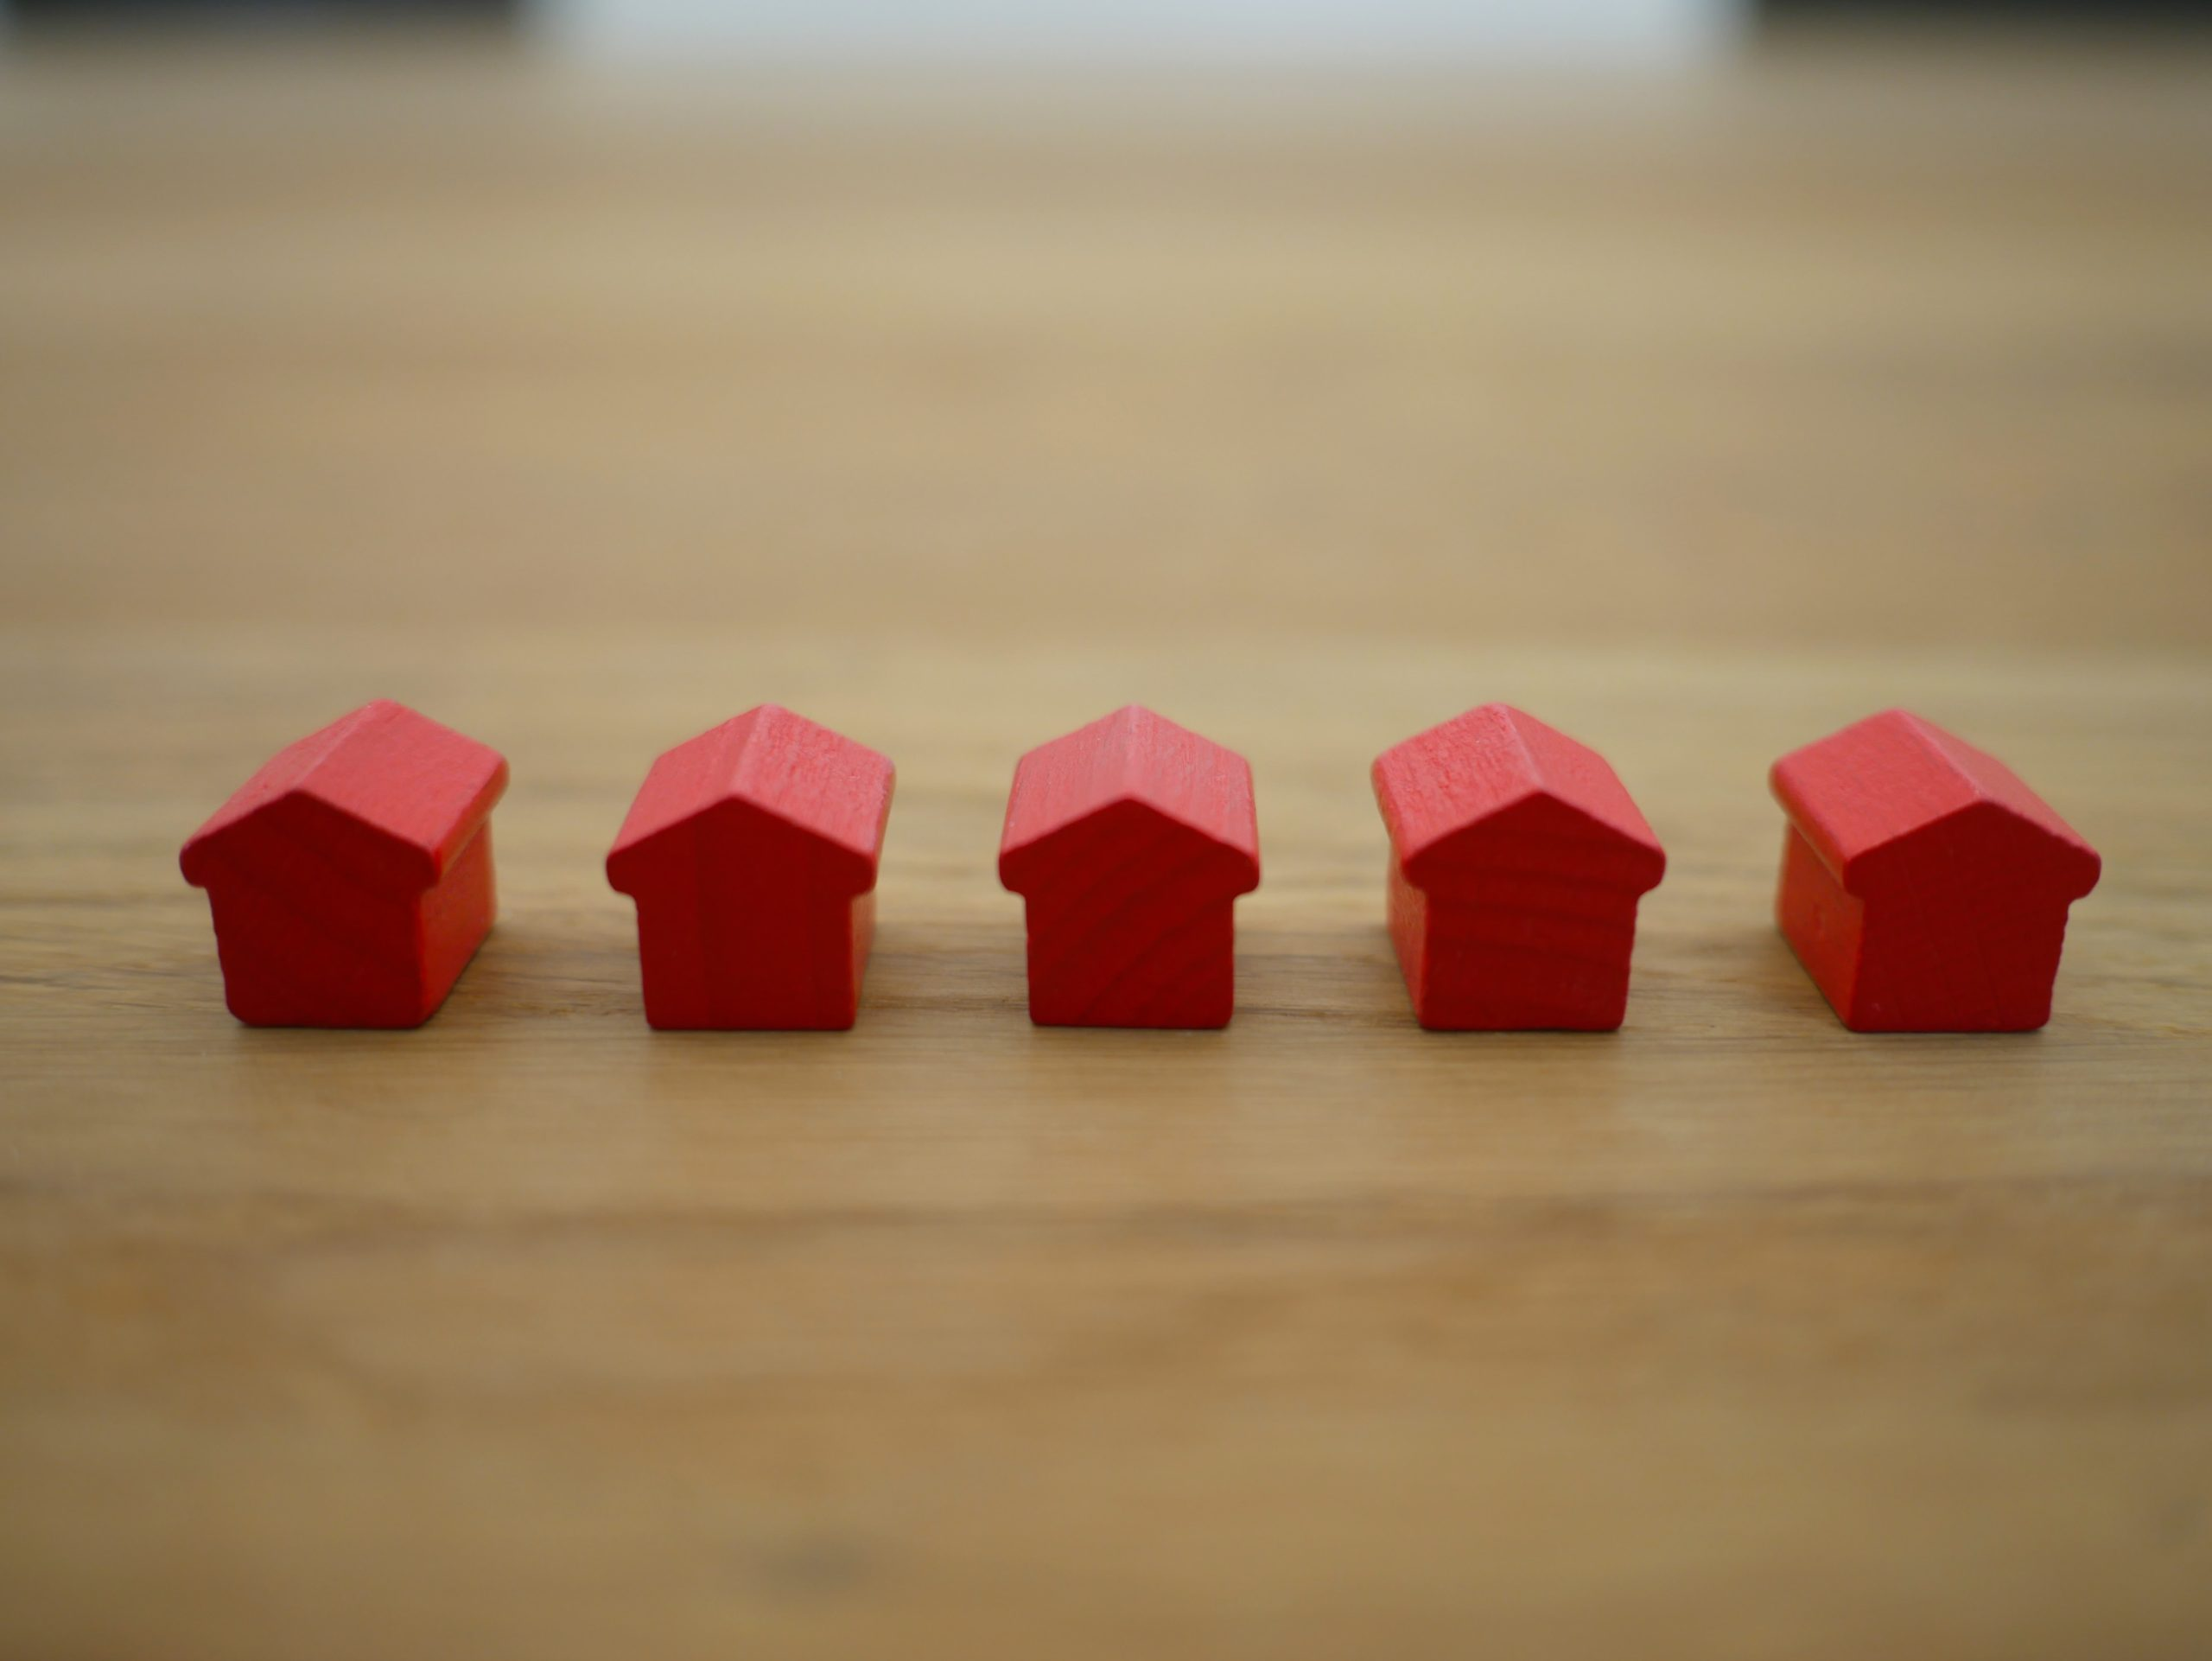 small wooden houses representing purchasing property